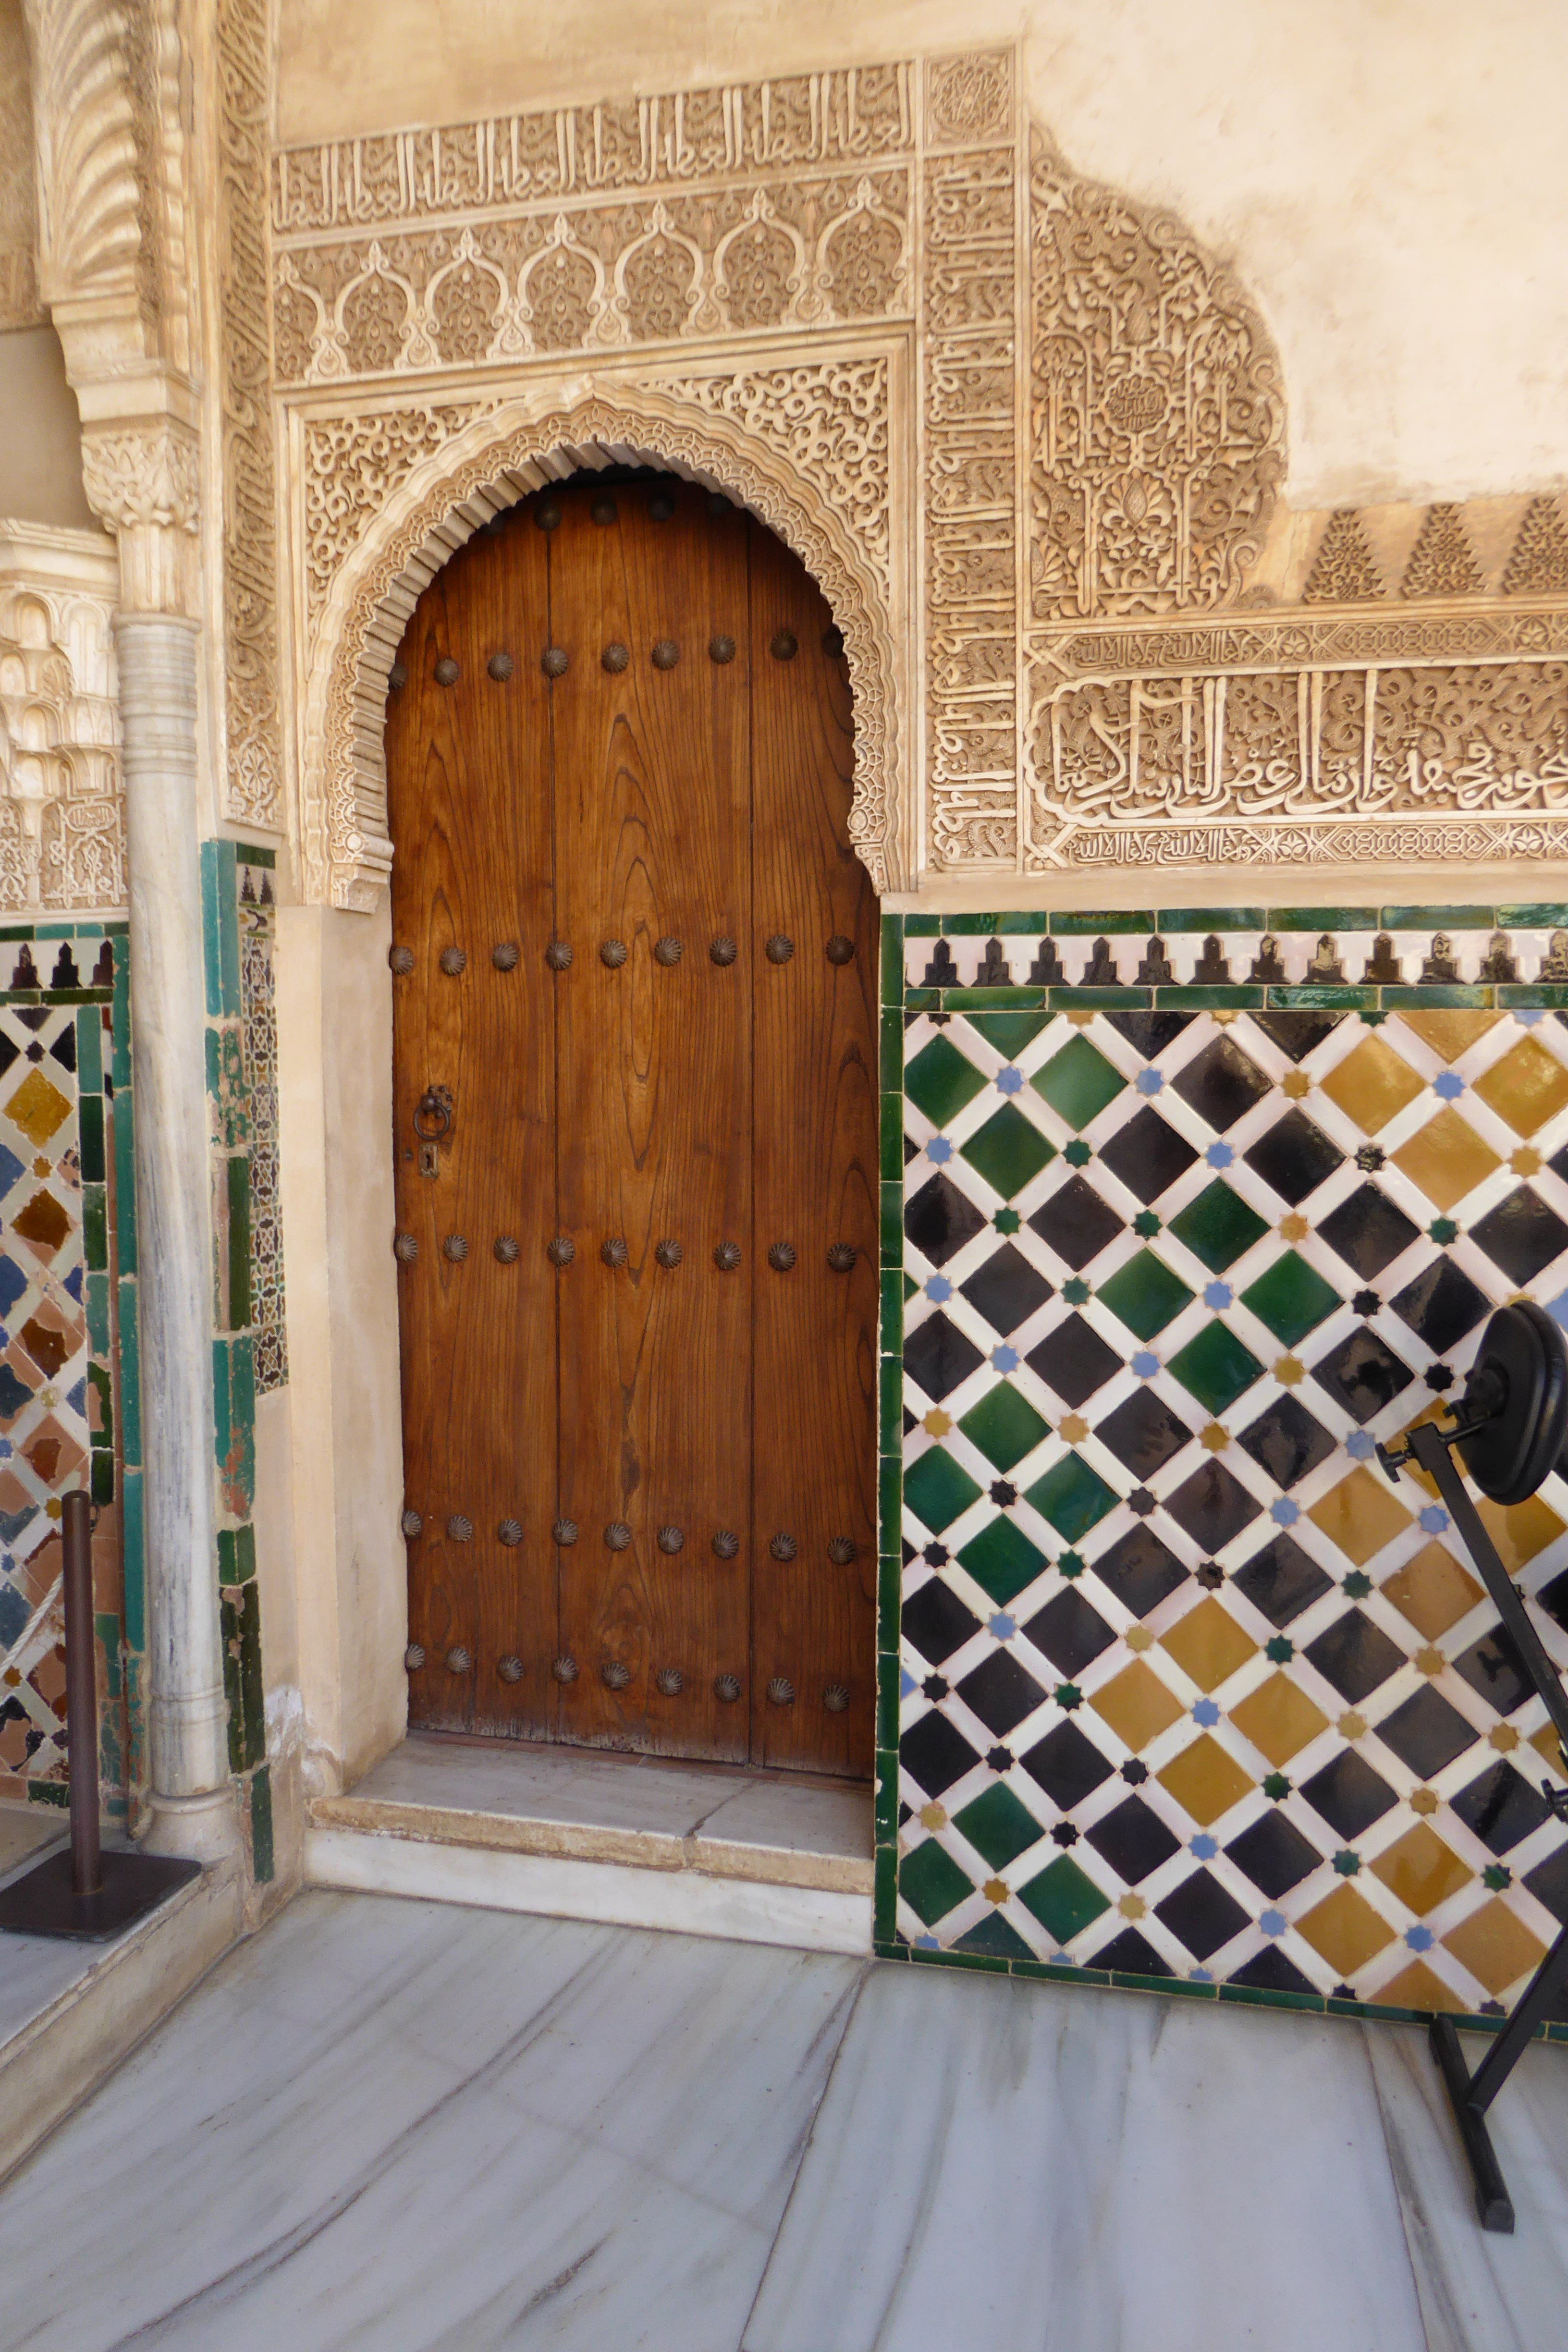 Decorative Door Surrounded By Tiles Inside The Alhambra Granada Spain Entrance Ways Door Decorations Entrance